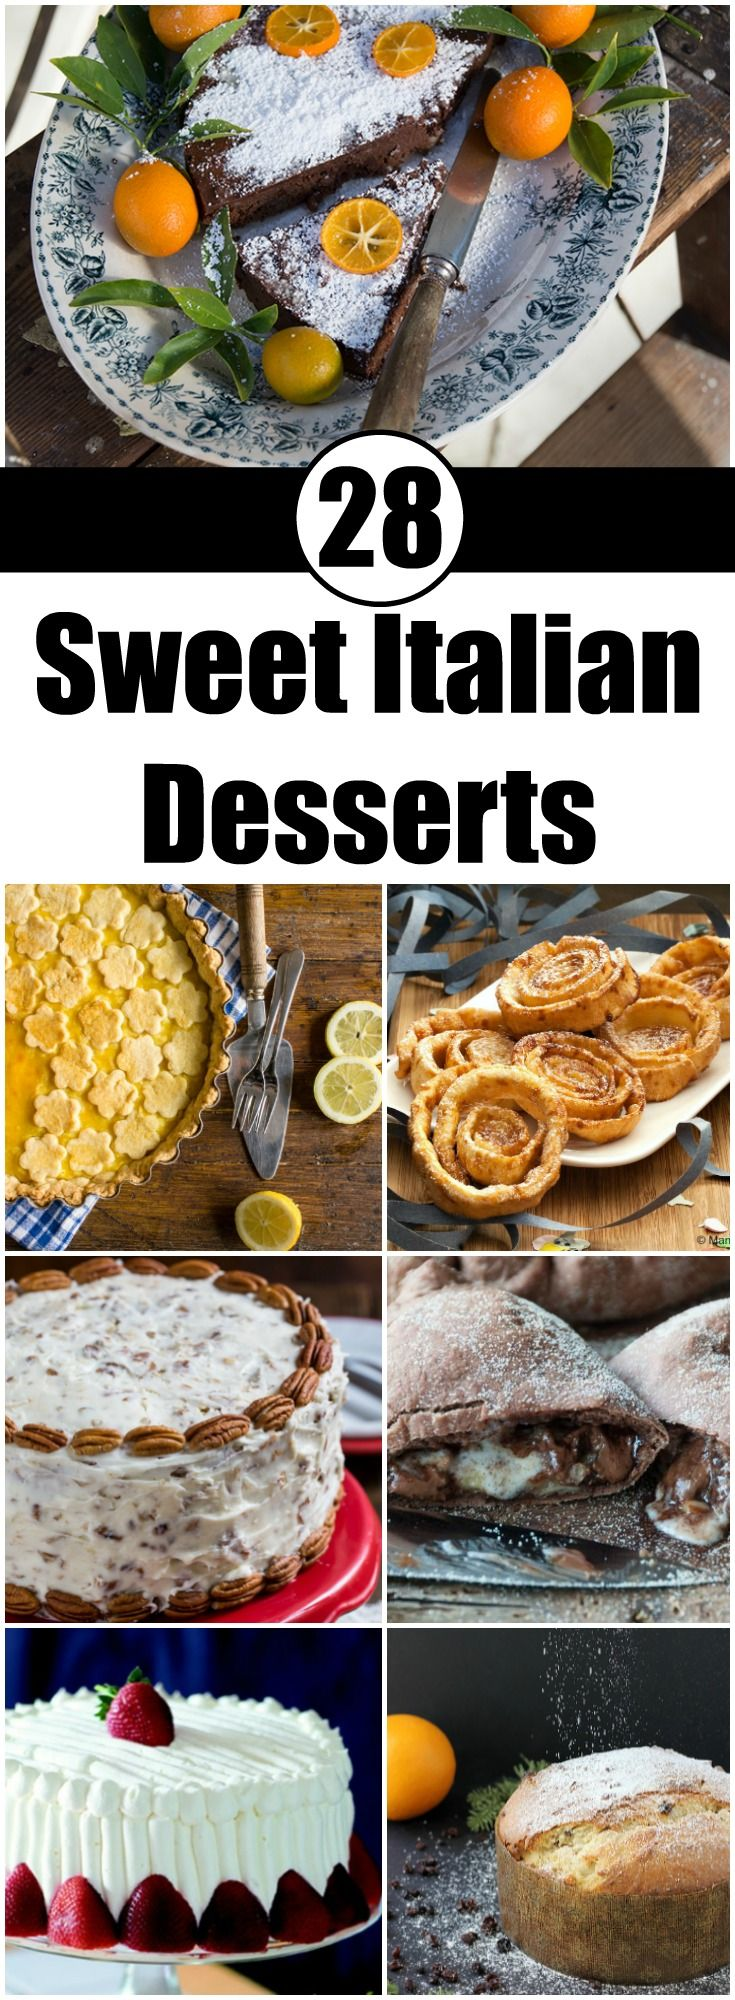 28 Sweet Italian Desserts You Won't Be Able To Get Enough Of